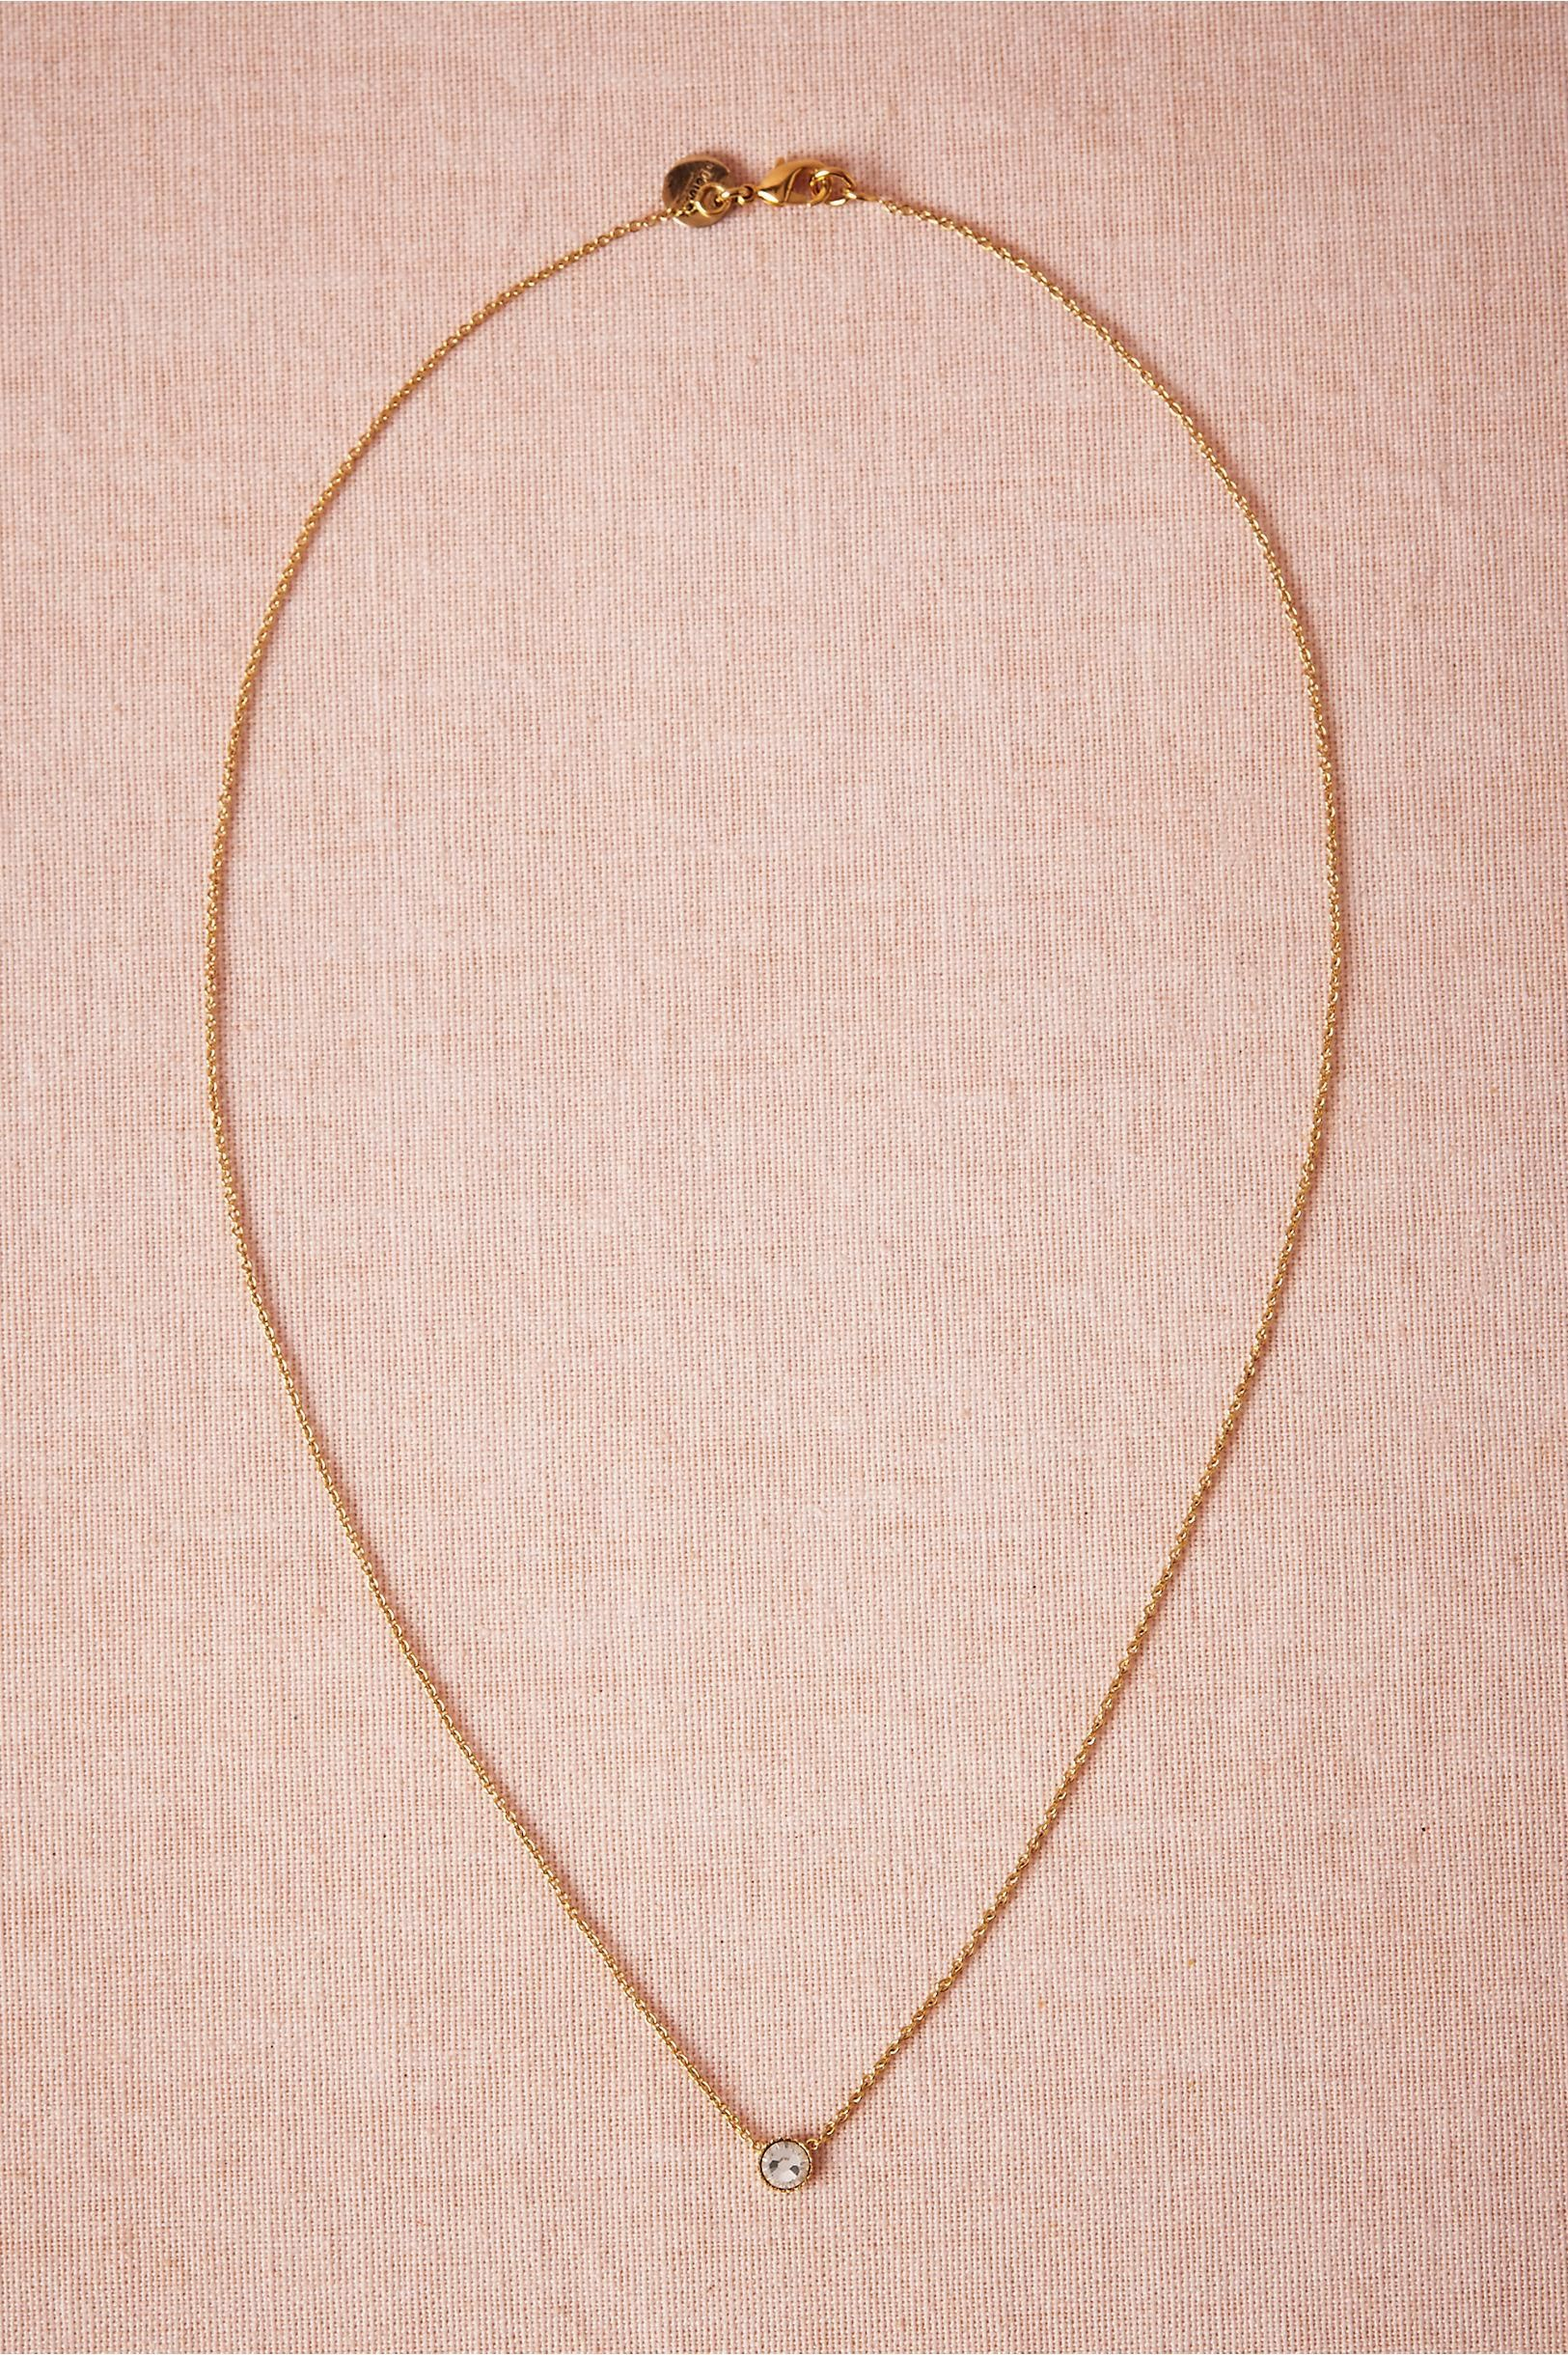 Product beacon necklace from bhldn sweet simple flower girl